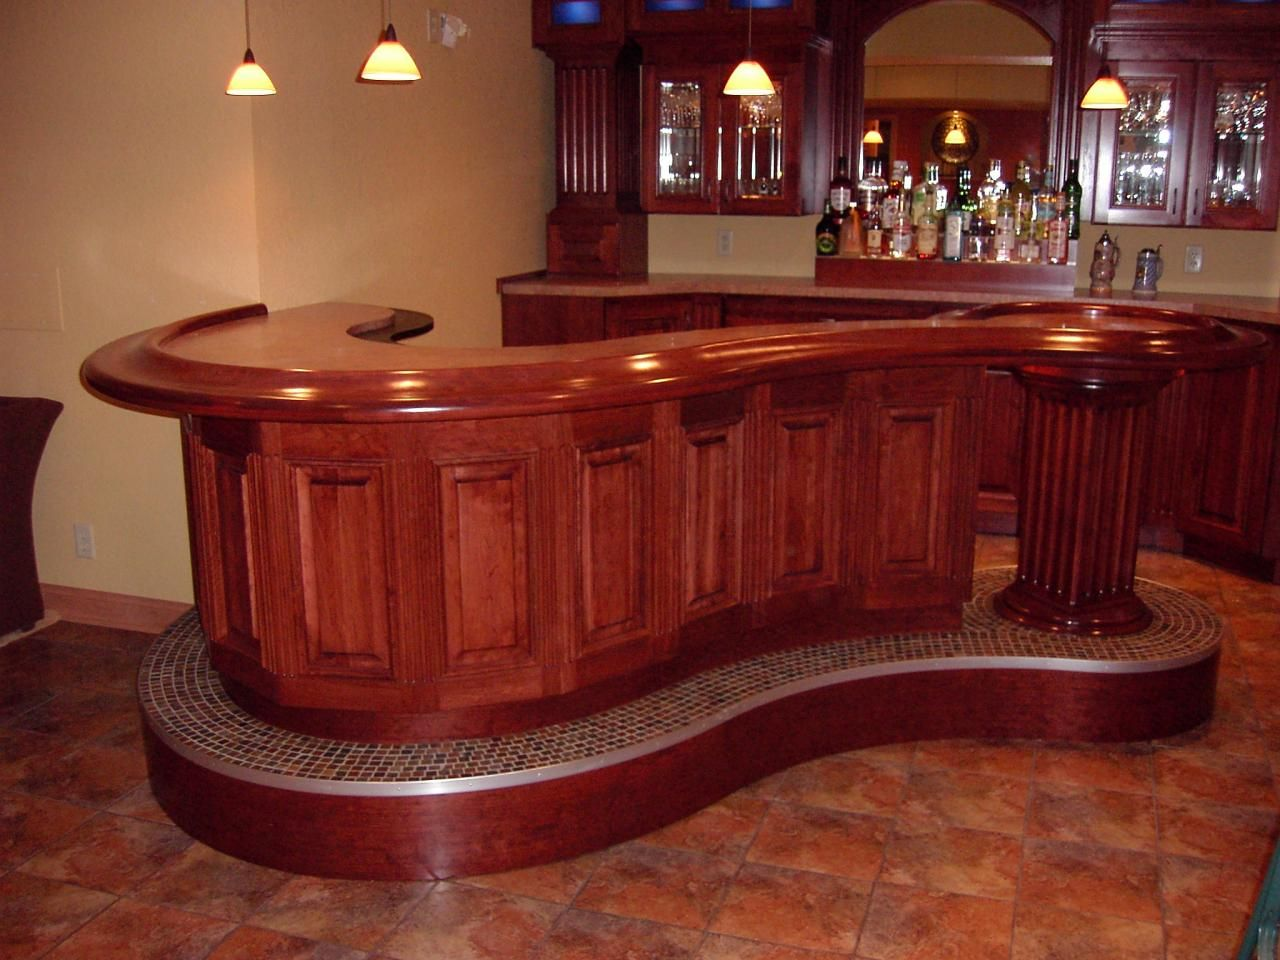 Top 10 home bars wood bars bar and woods Home pub bar furniture